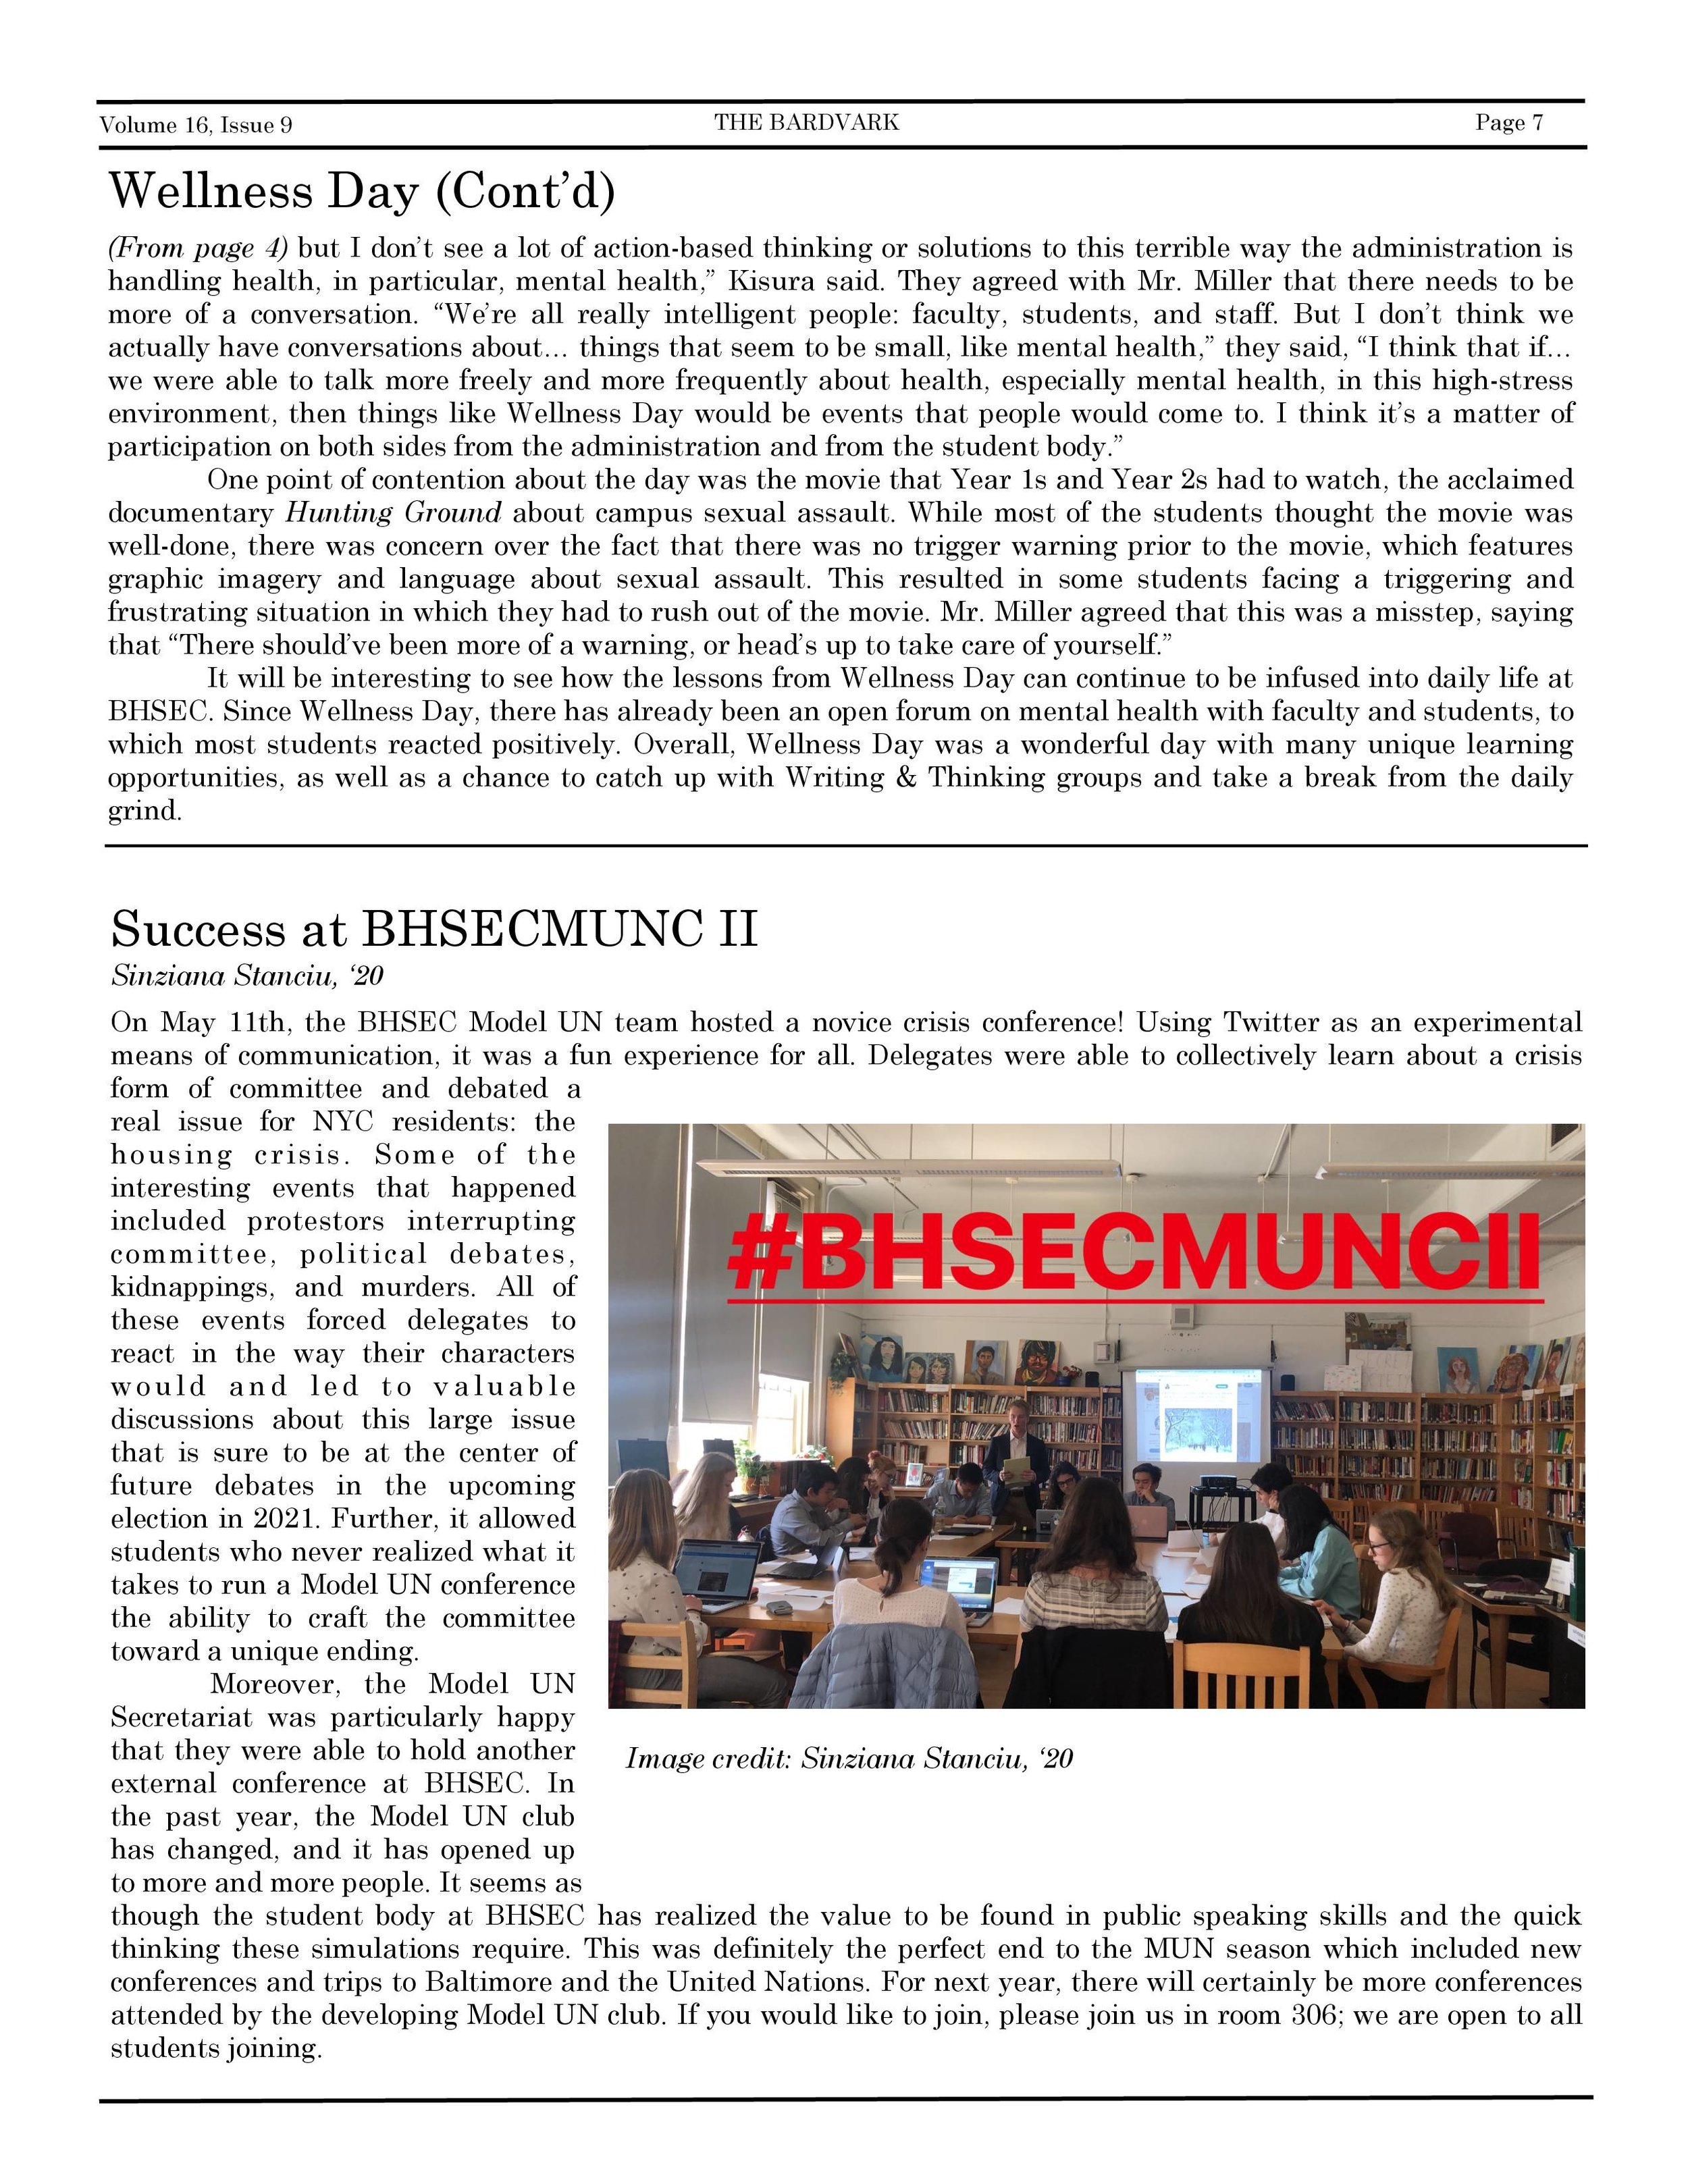 Issue 9 May 2019-7.jpg